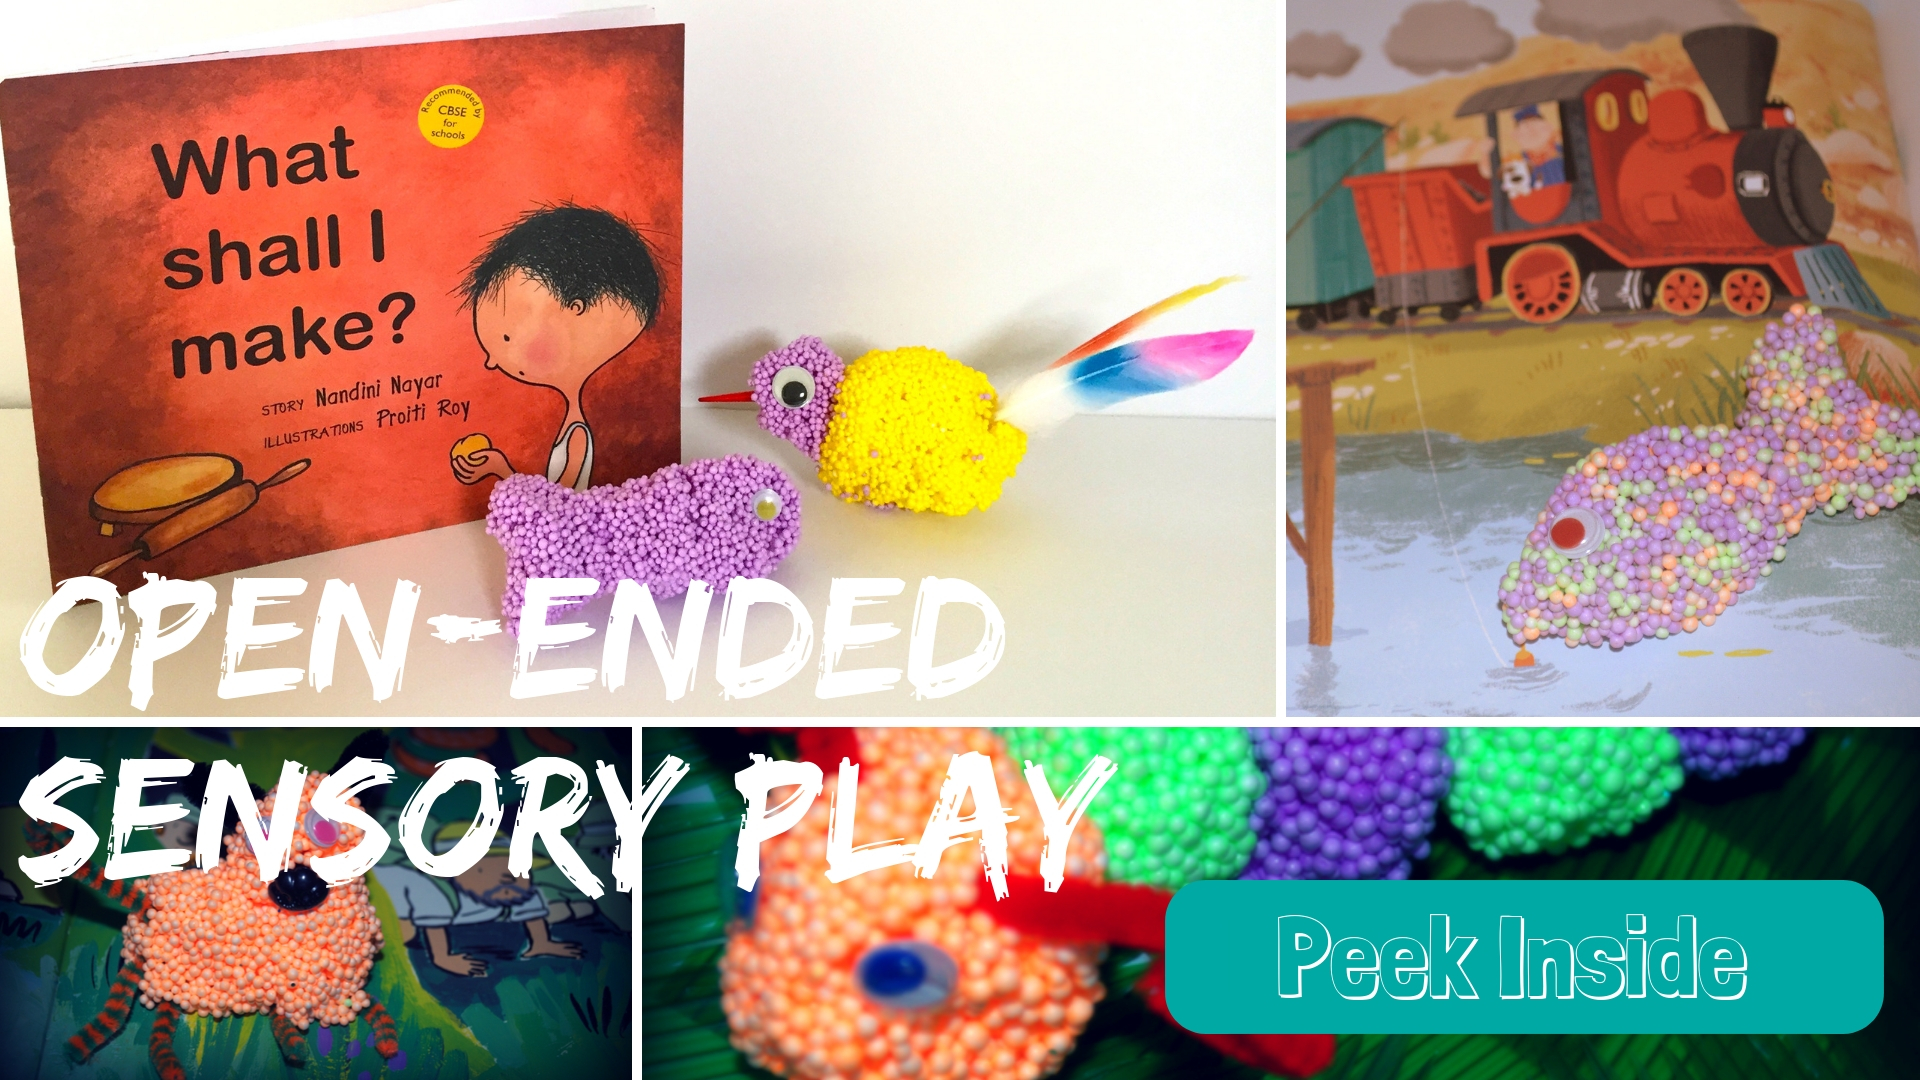 Open-ended Sensory Play for preschoolers